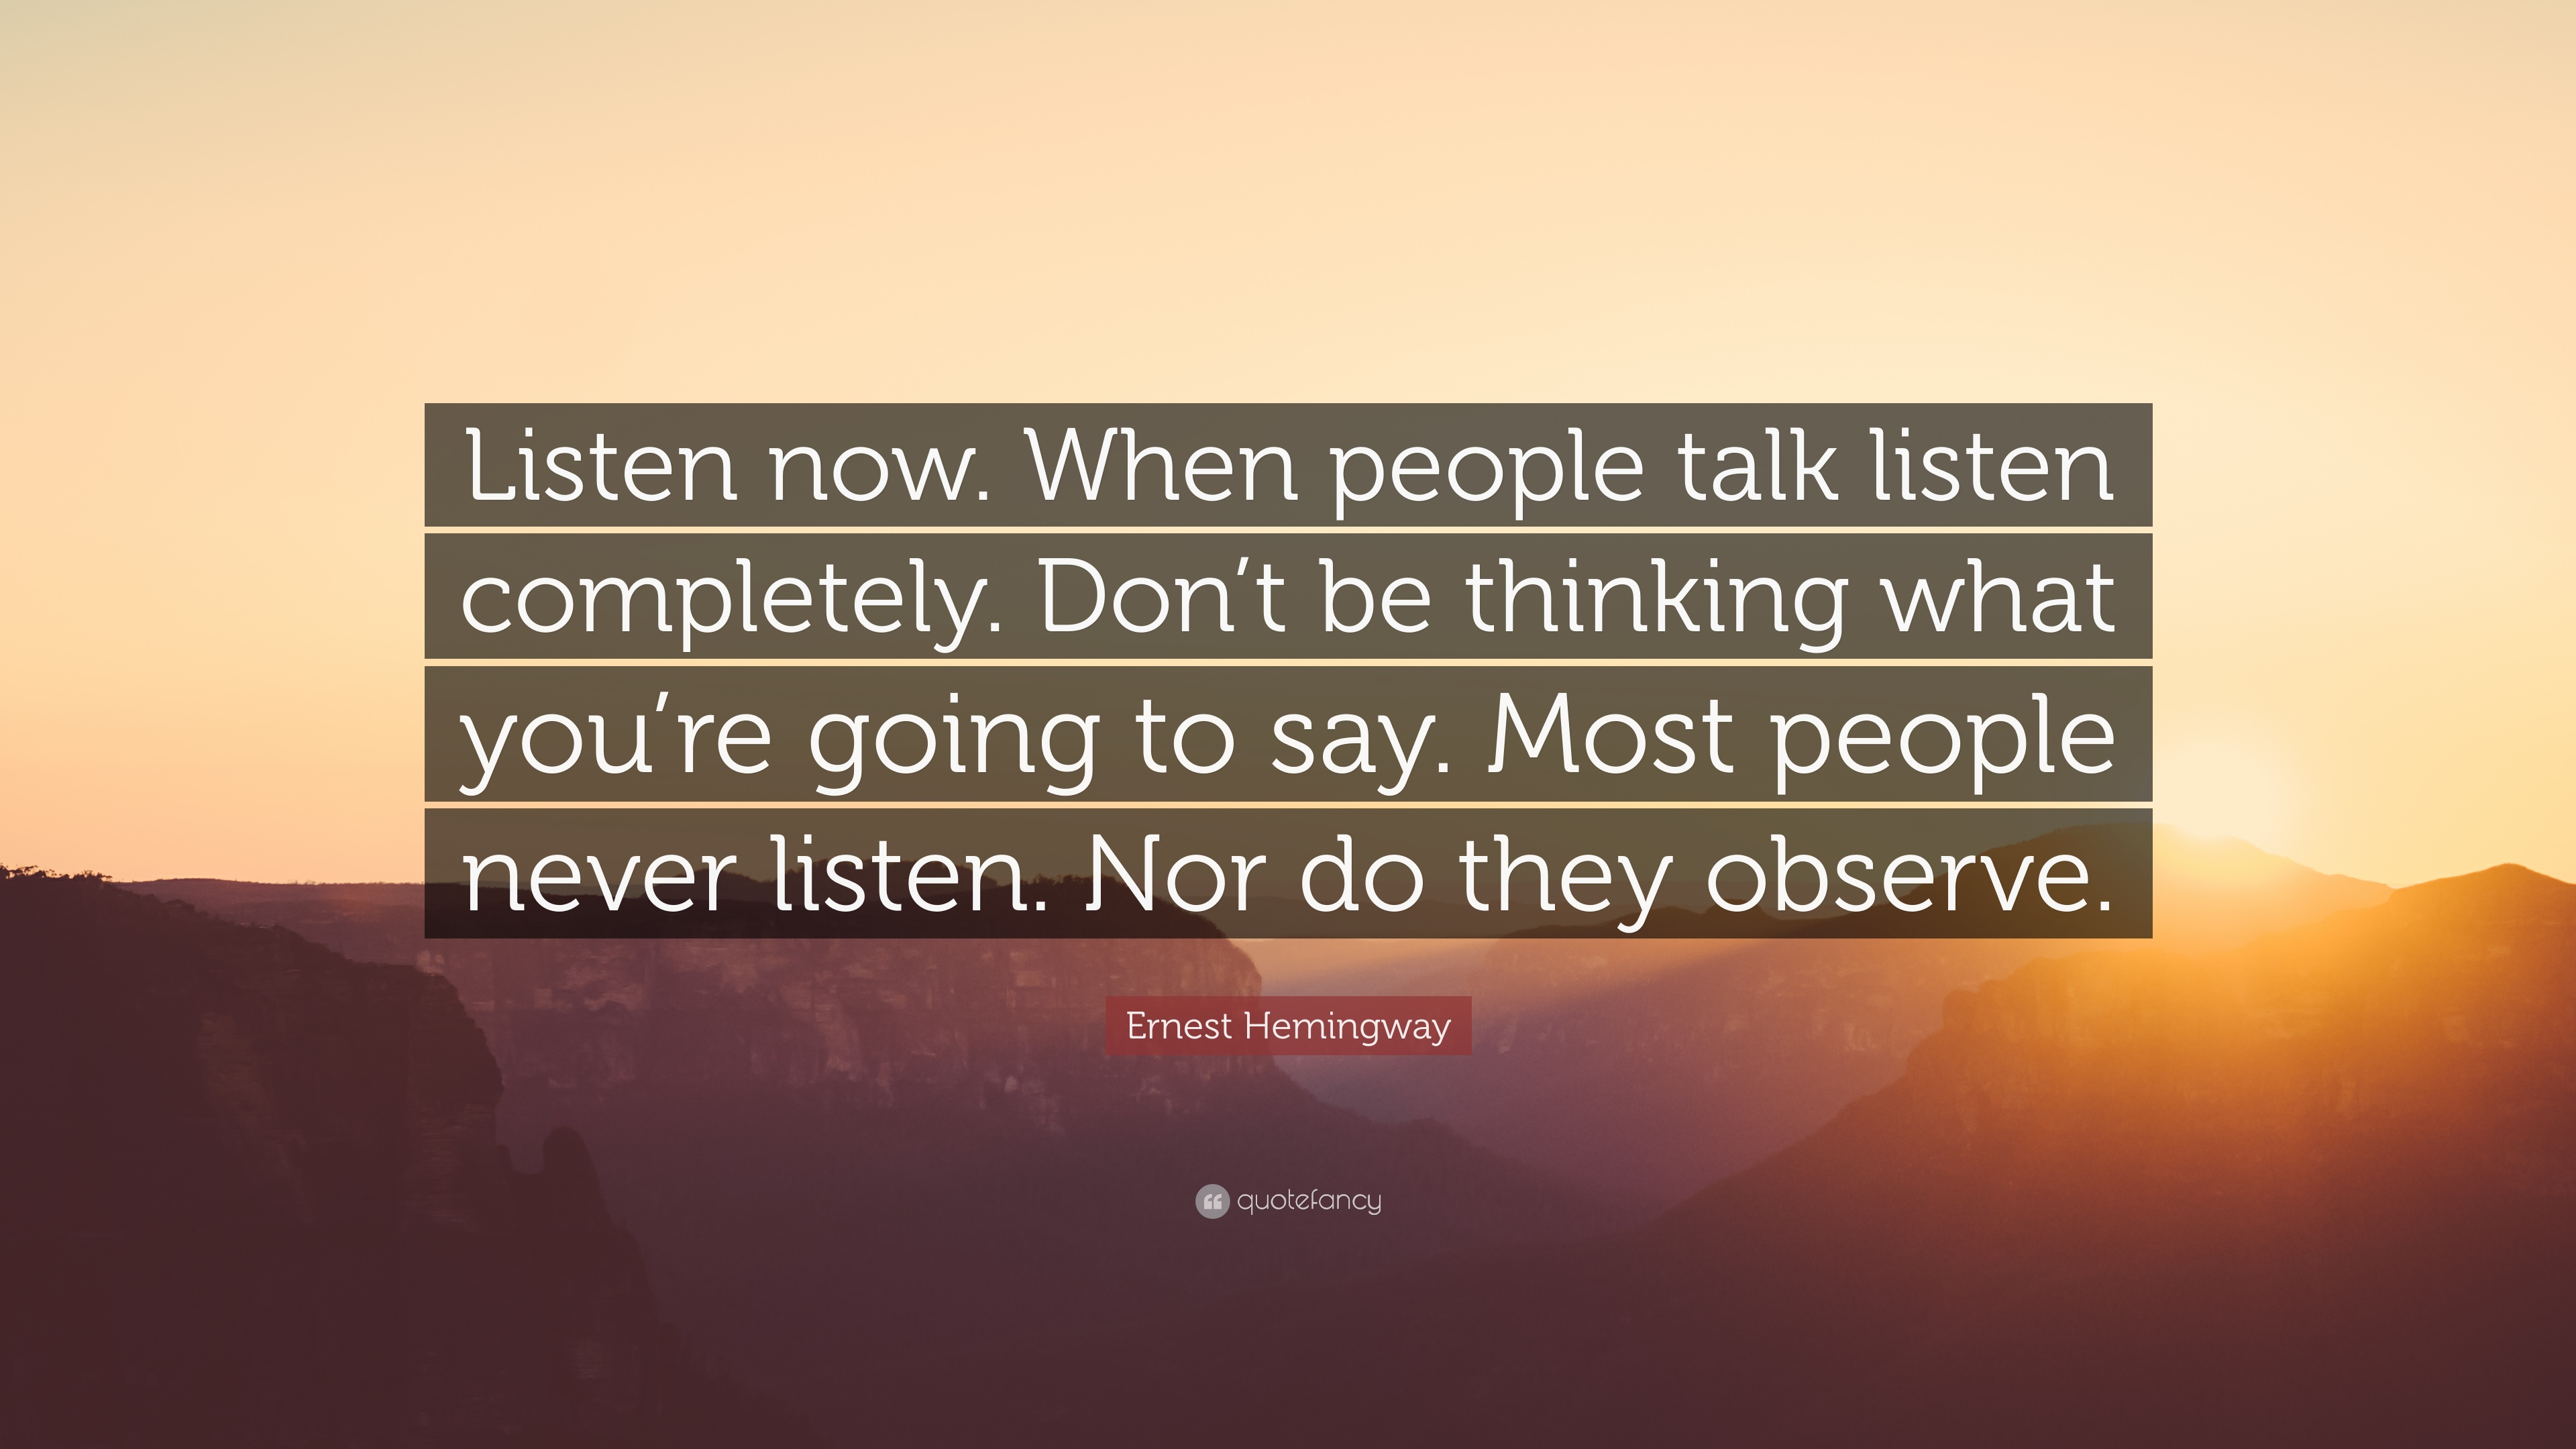 listen to a talk_Ernest Hemingway Quotes (100 wallpapers) - Quotefancy